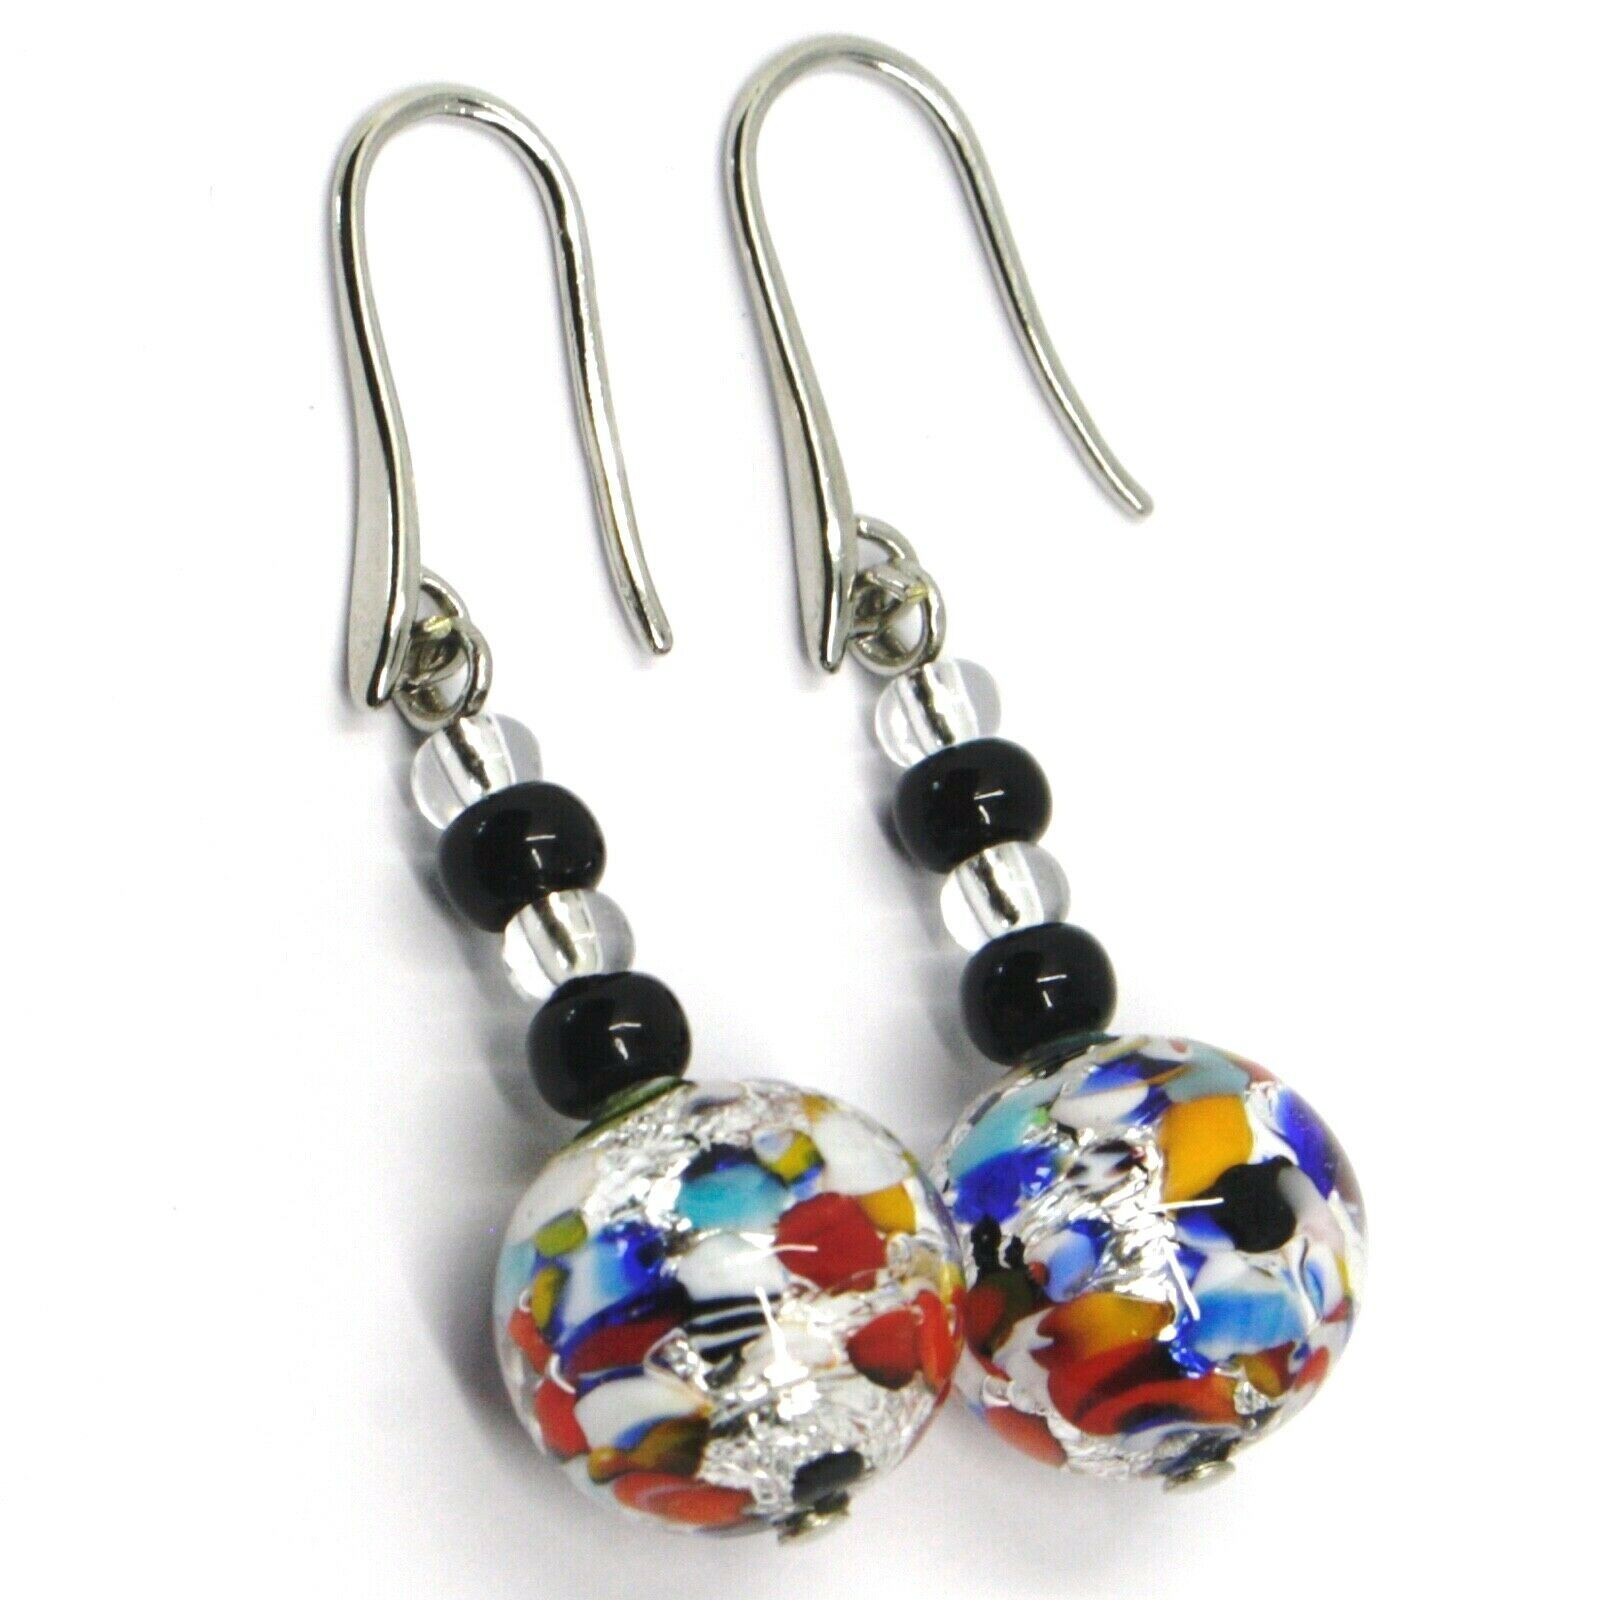 PENDANT EARRINGS MACULATE MULTI COLOR MURANO GLASS SPHERE, SILVER LEAF, ITALY